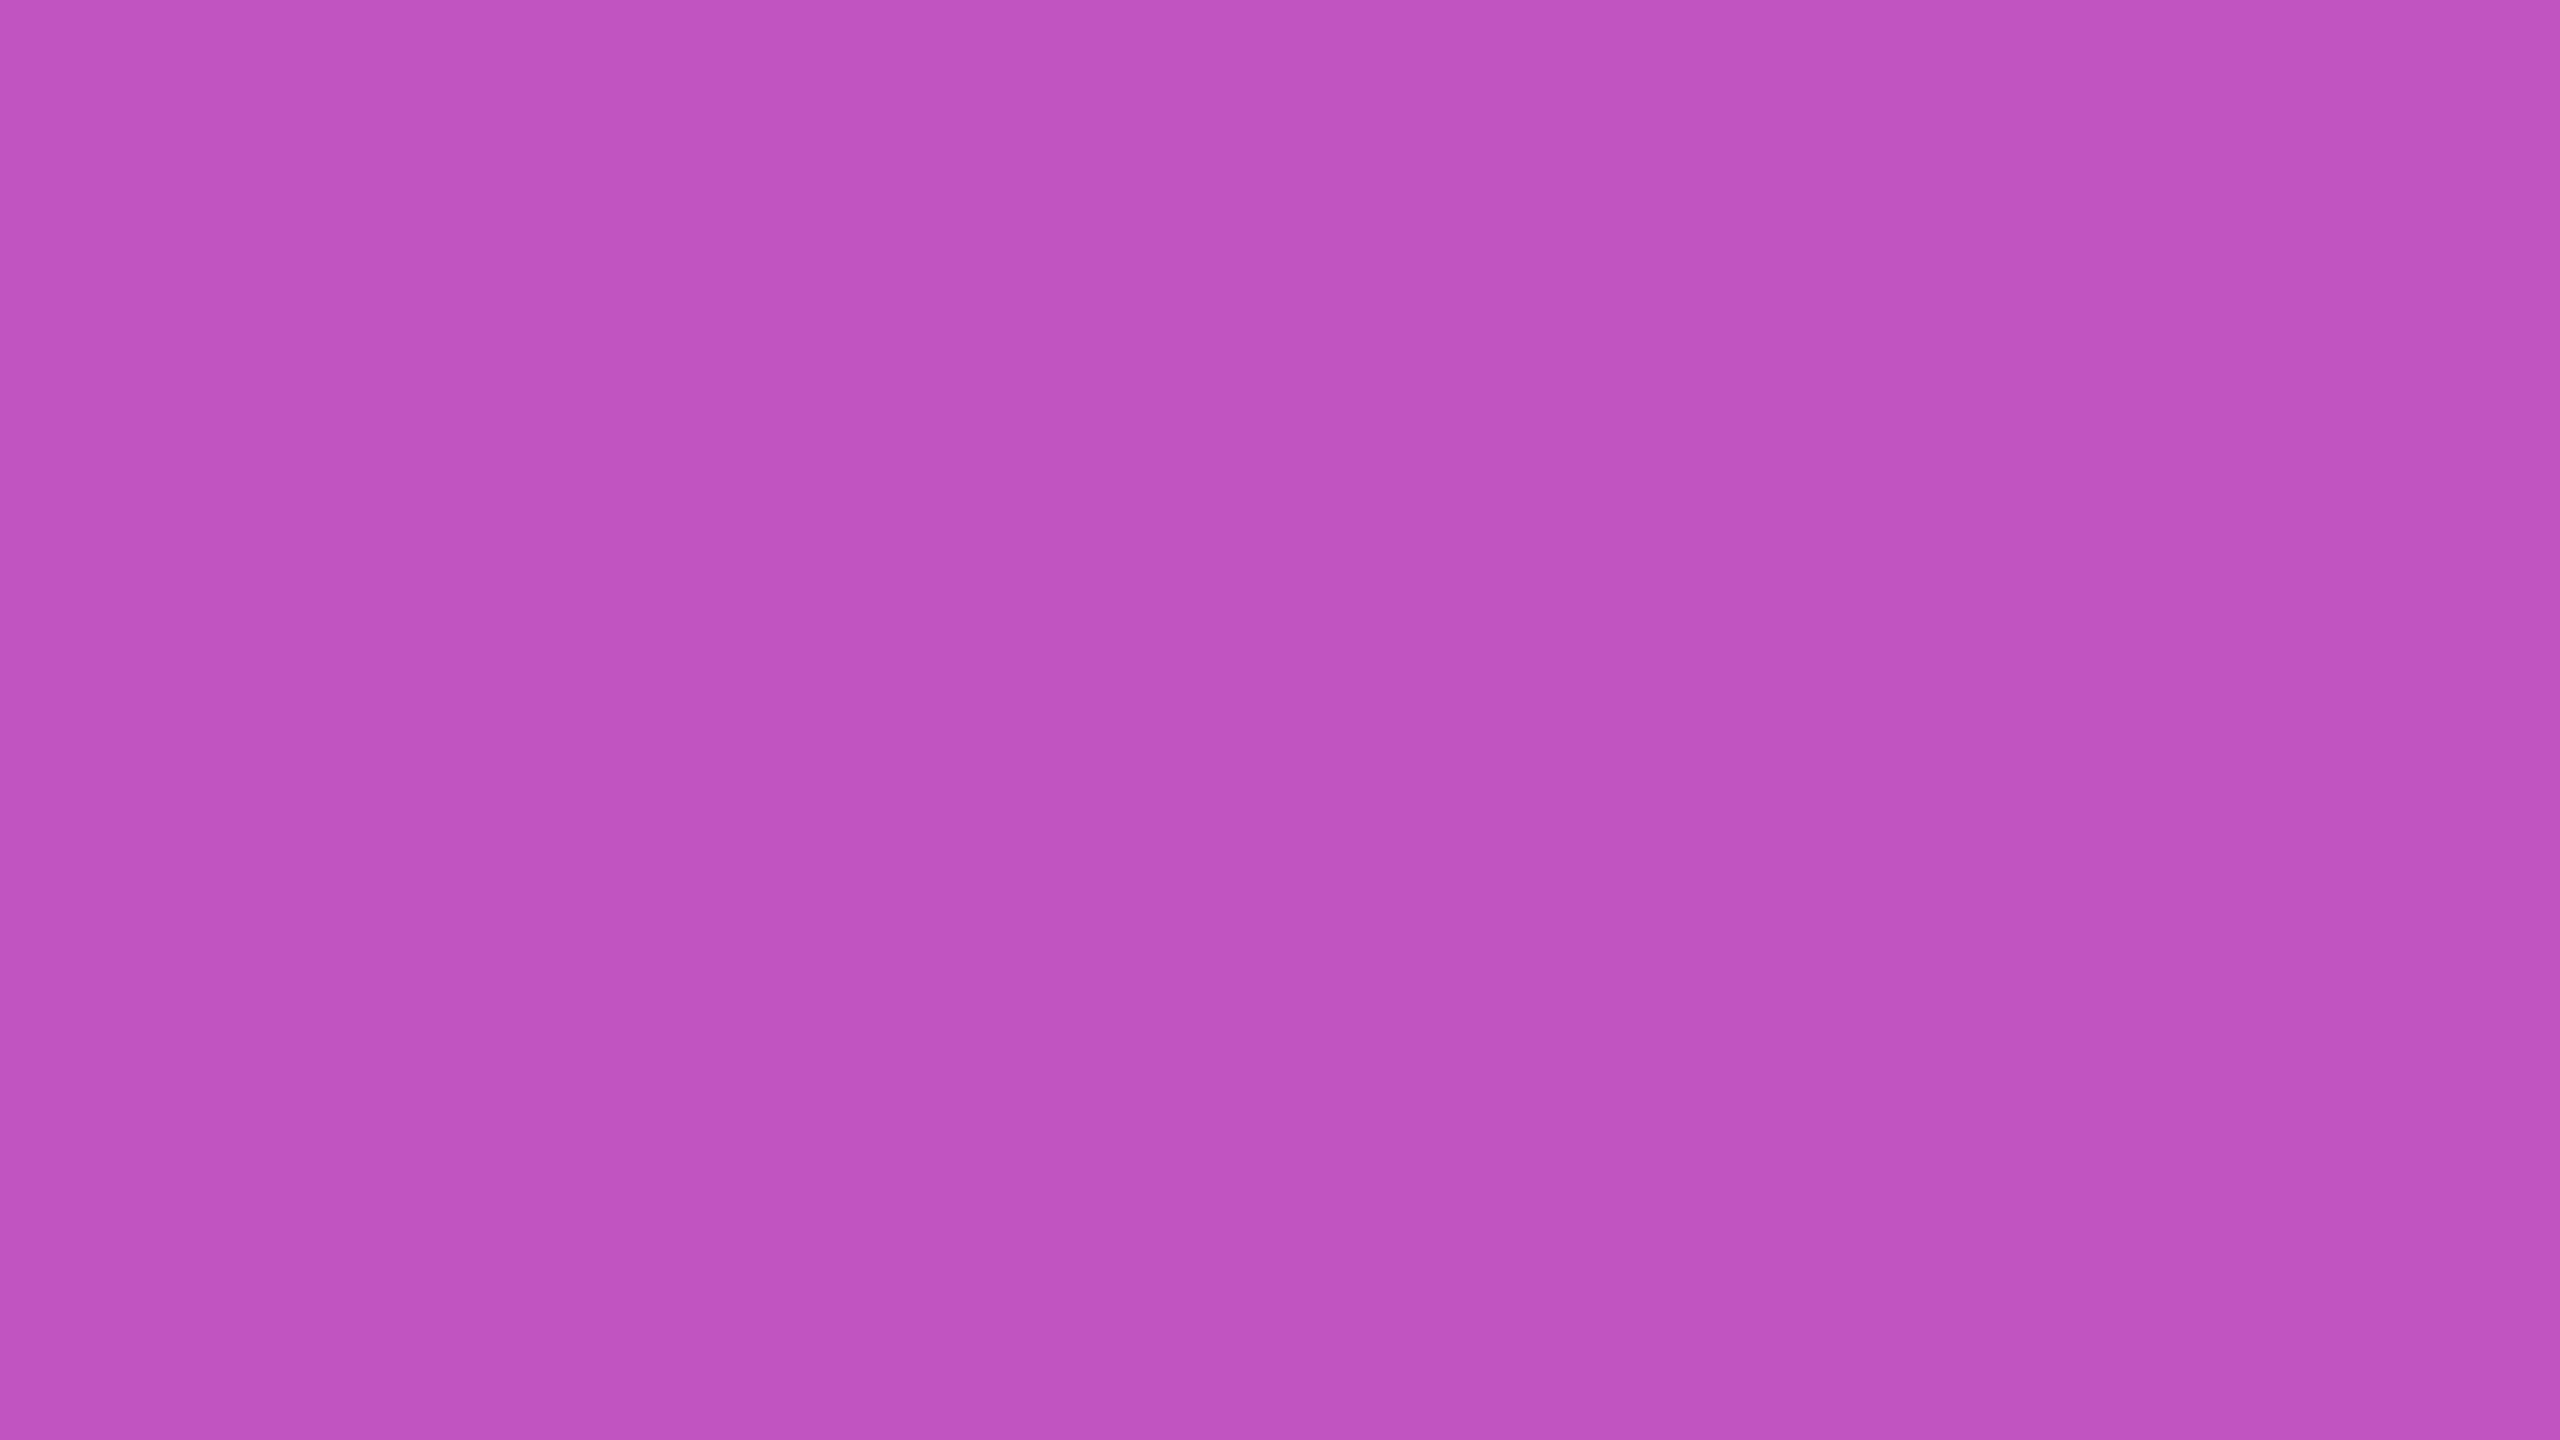 2560x1440 Deep Fuchsia Solid Color Background